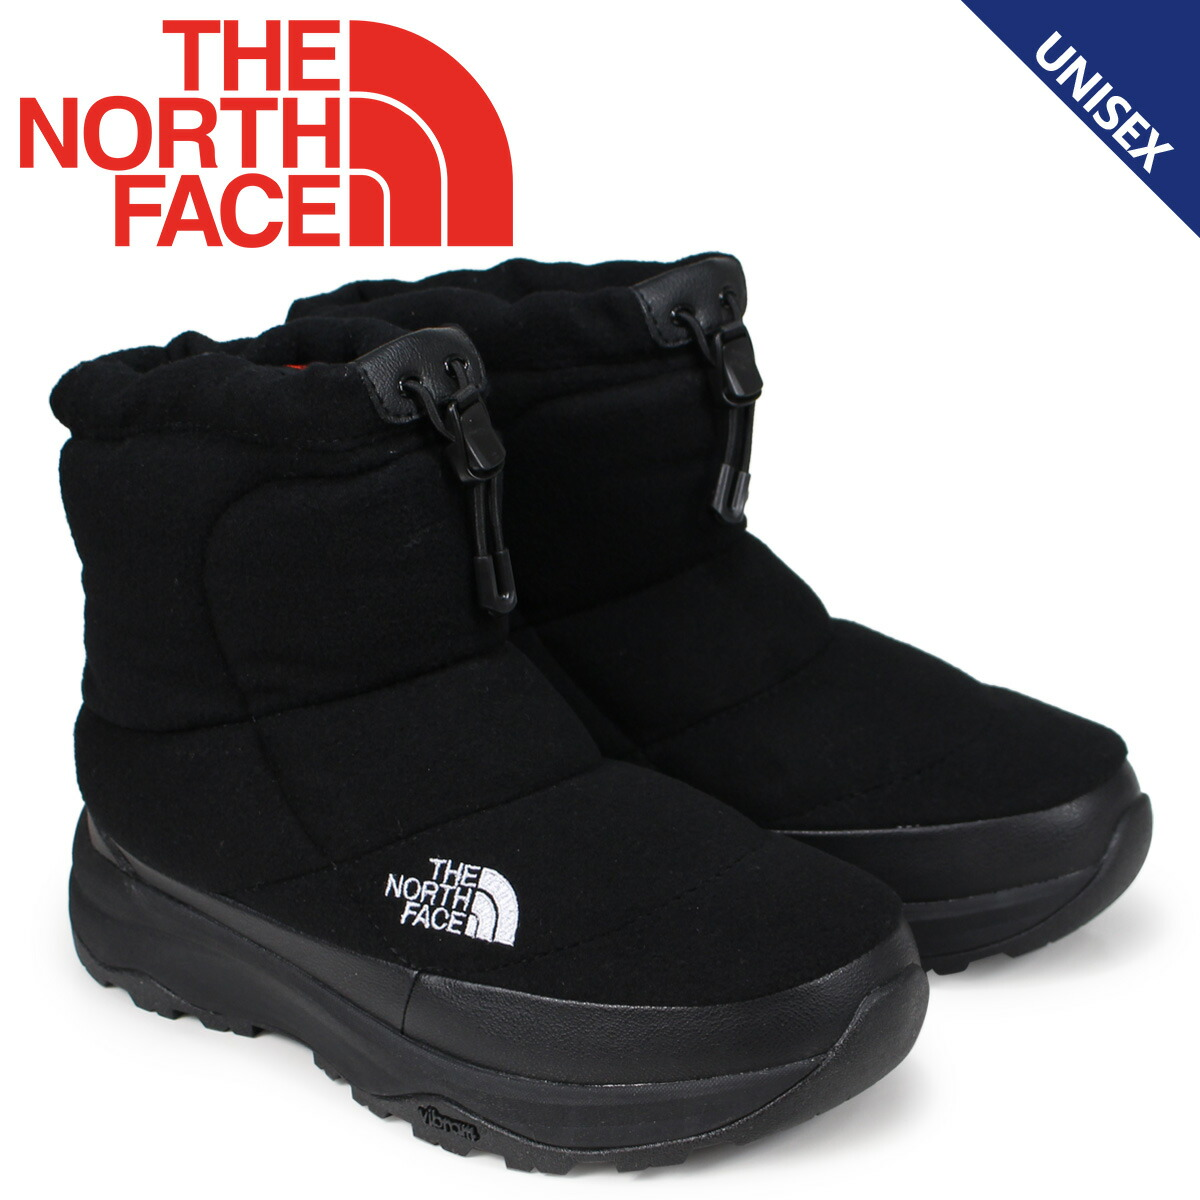 9853a8dc20bf8 North Face THE NORTH FACE ヌブシブーティブーツメンズレディース NUPTSE BOOTIE WOOL IV SHORT  black NF51879  9 21 Shinnyu load